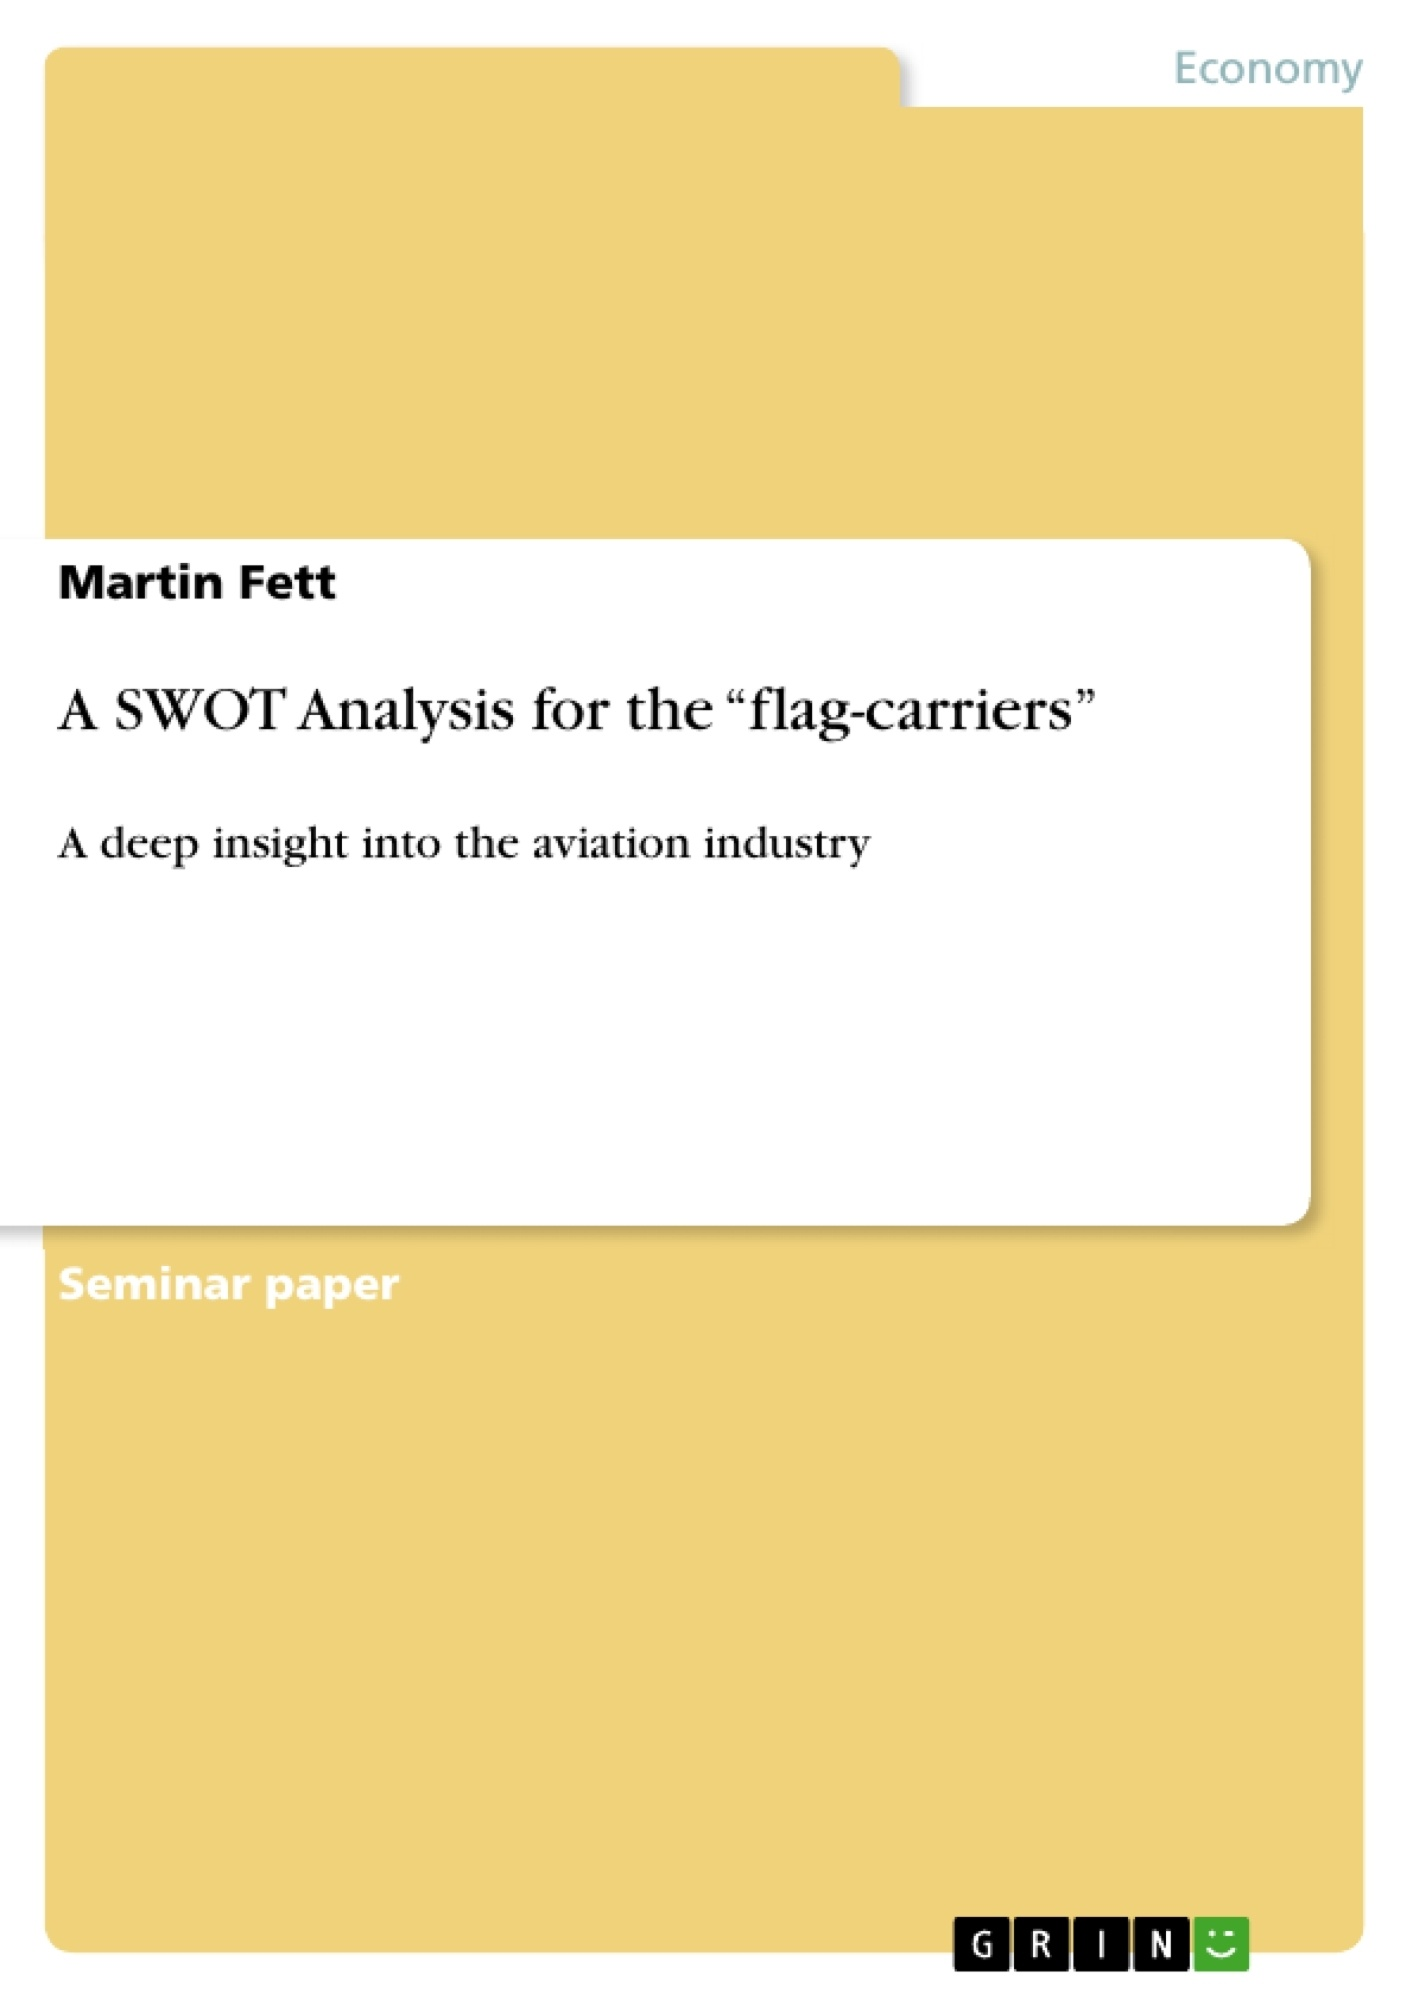 "A SWOT Analysis for the ""flag-carriers"" 